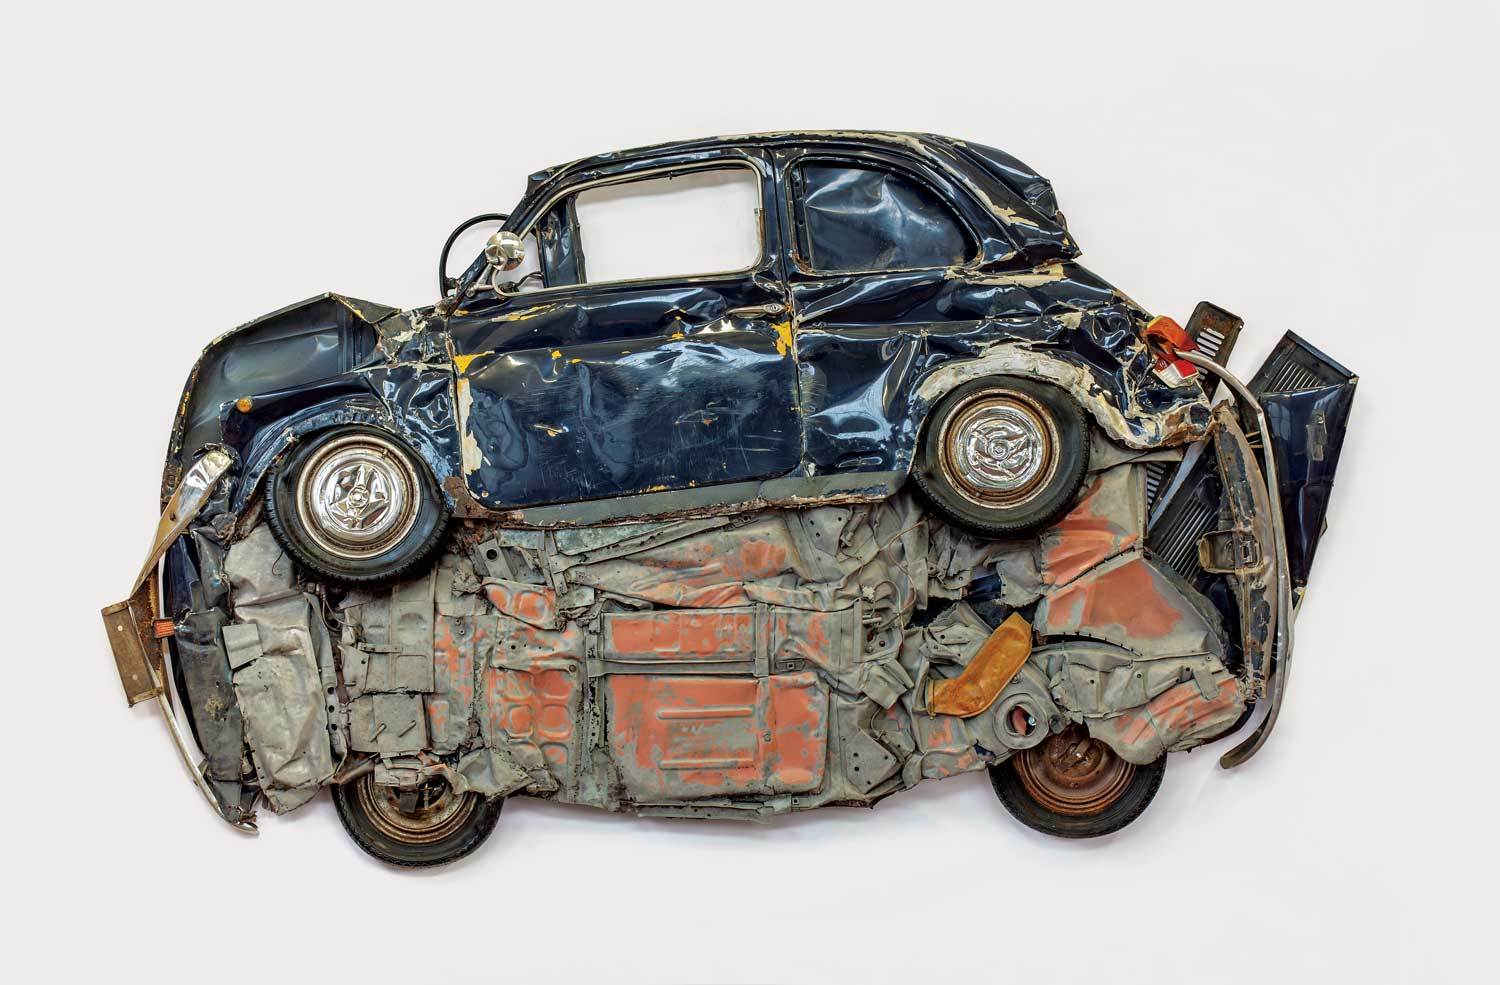 Ron Arad's Blue Flattened Fiat Car Sculpture